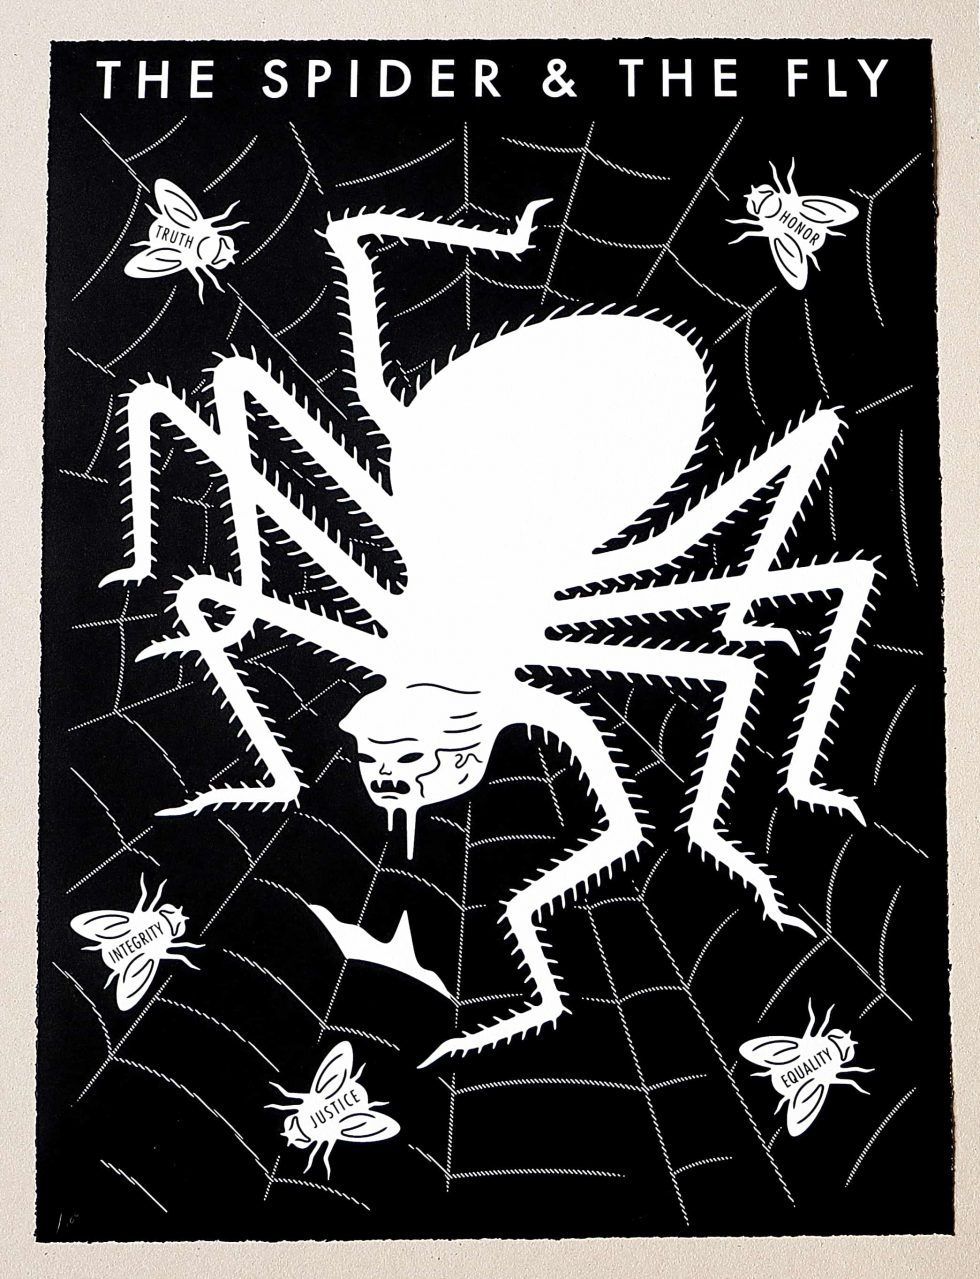 Lot #9541 – Cleon Peterson The Spider & The Fly Screen Print White & Black LTD ED 100 Art Cleon Peterson